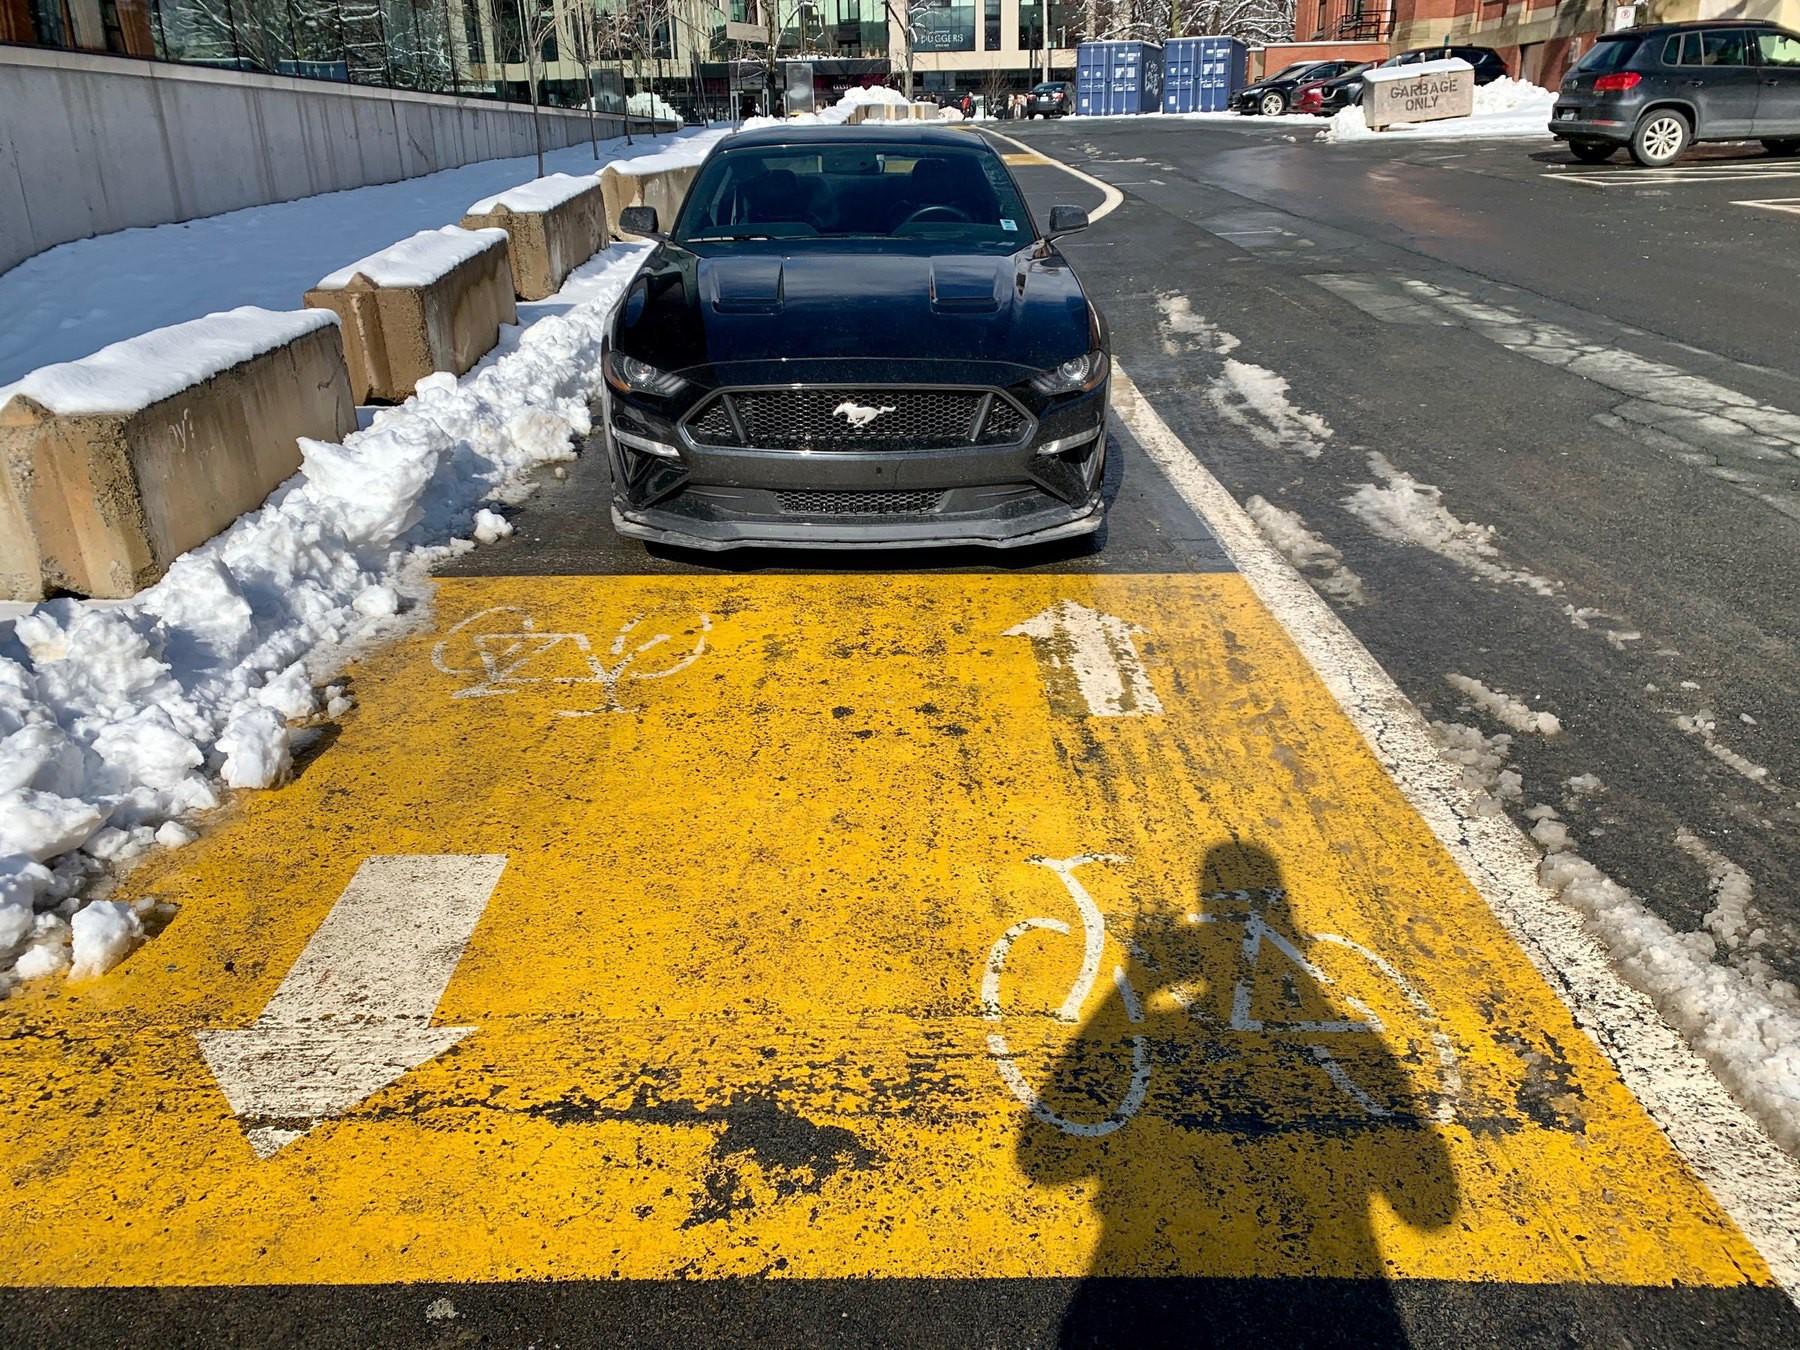 A car blocking a bicycle lane that has been cleared of snow.